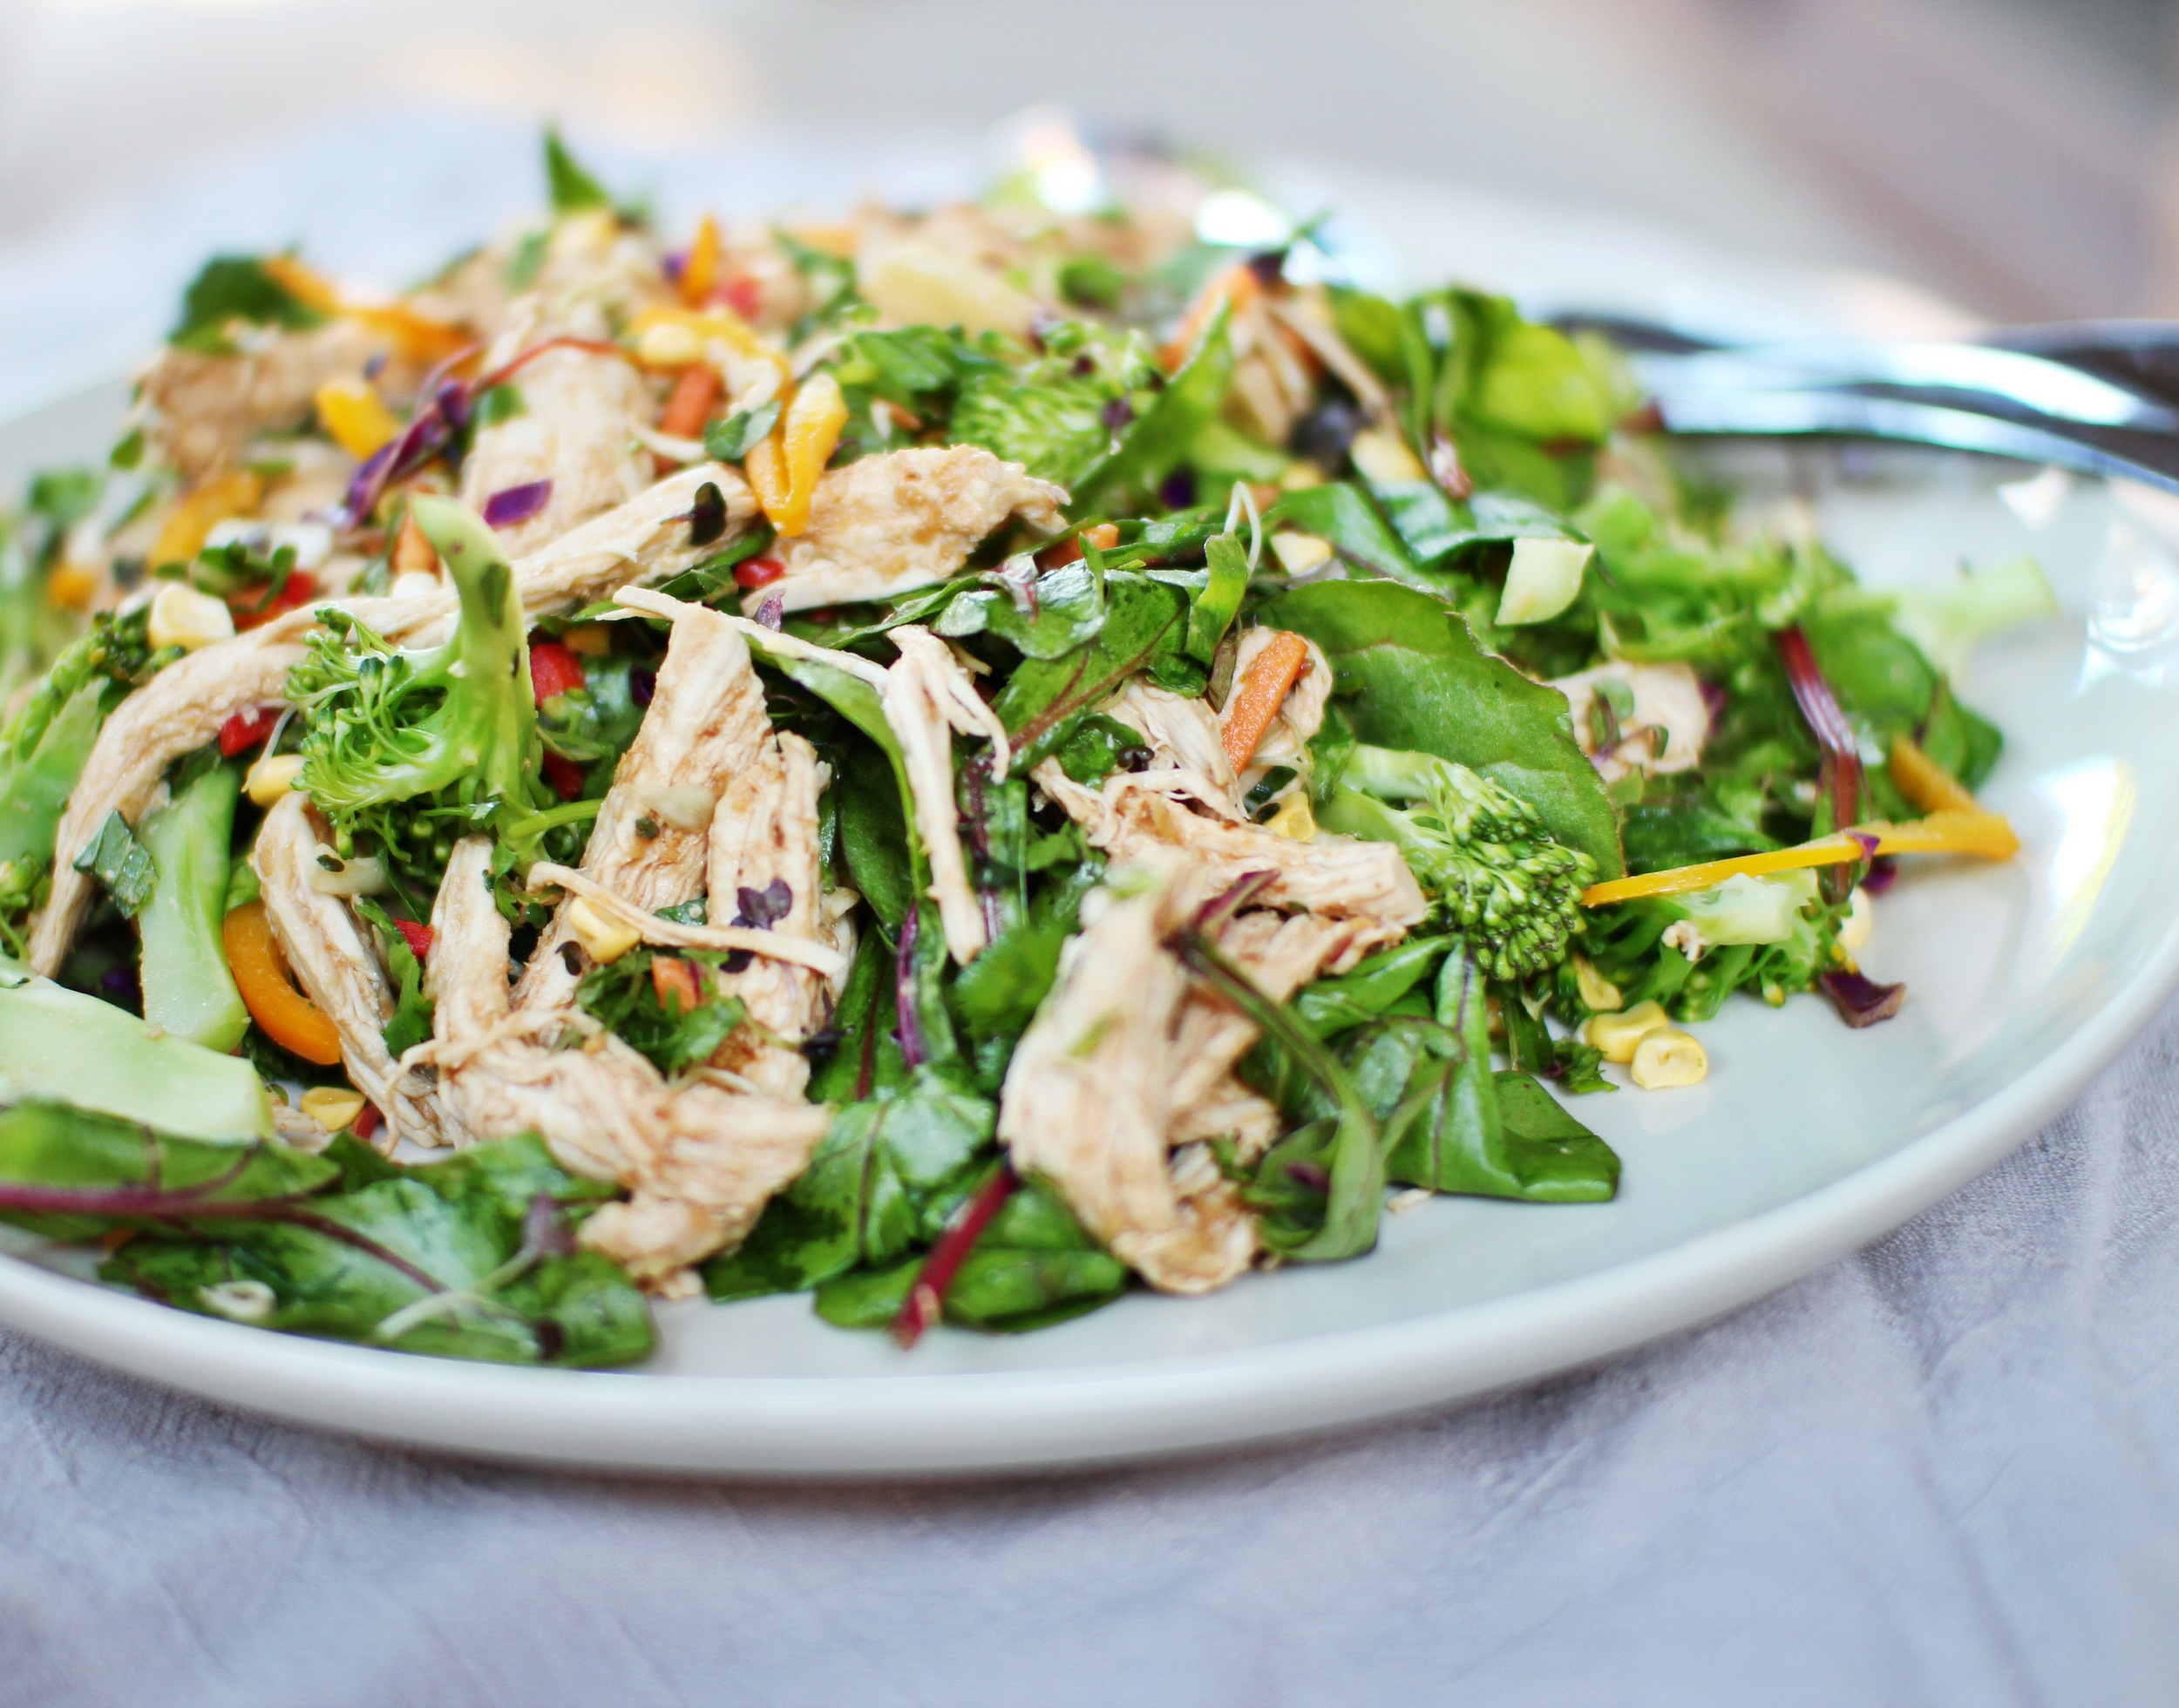 Rainbow Salad with Poached Chicken & Miso Dressing — LIZANNE MARR